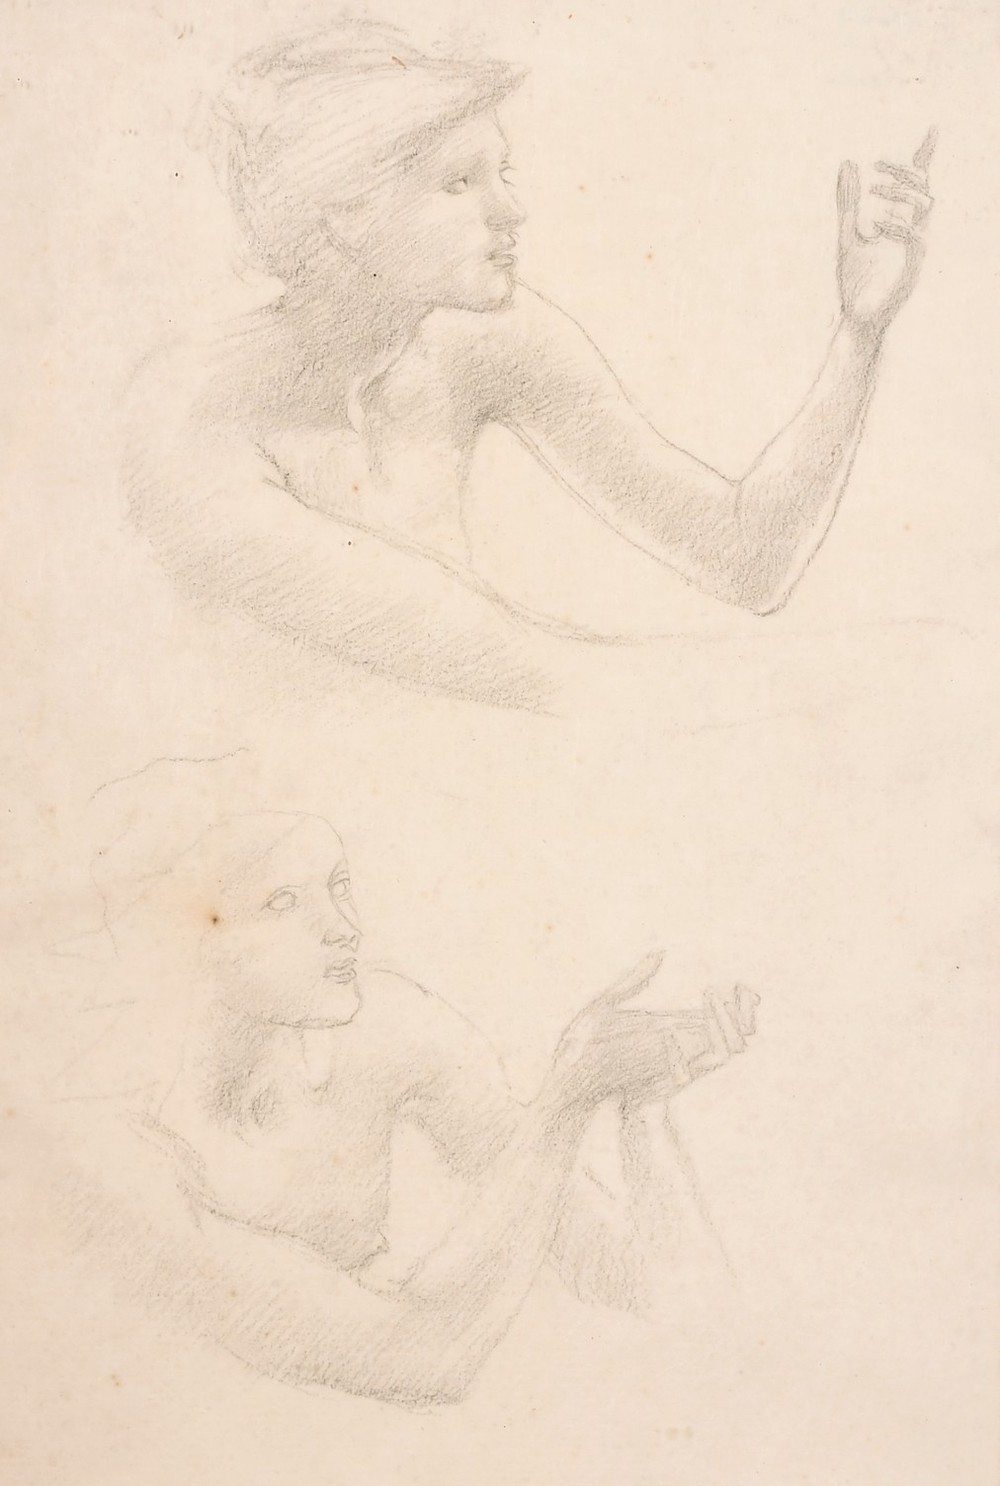 Sir Edward Coley Burne-Jones sketched view of two figures